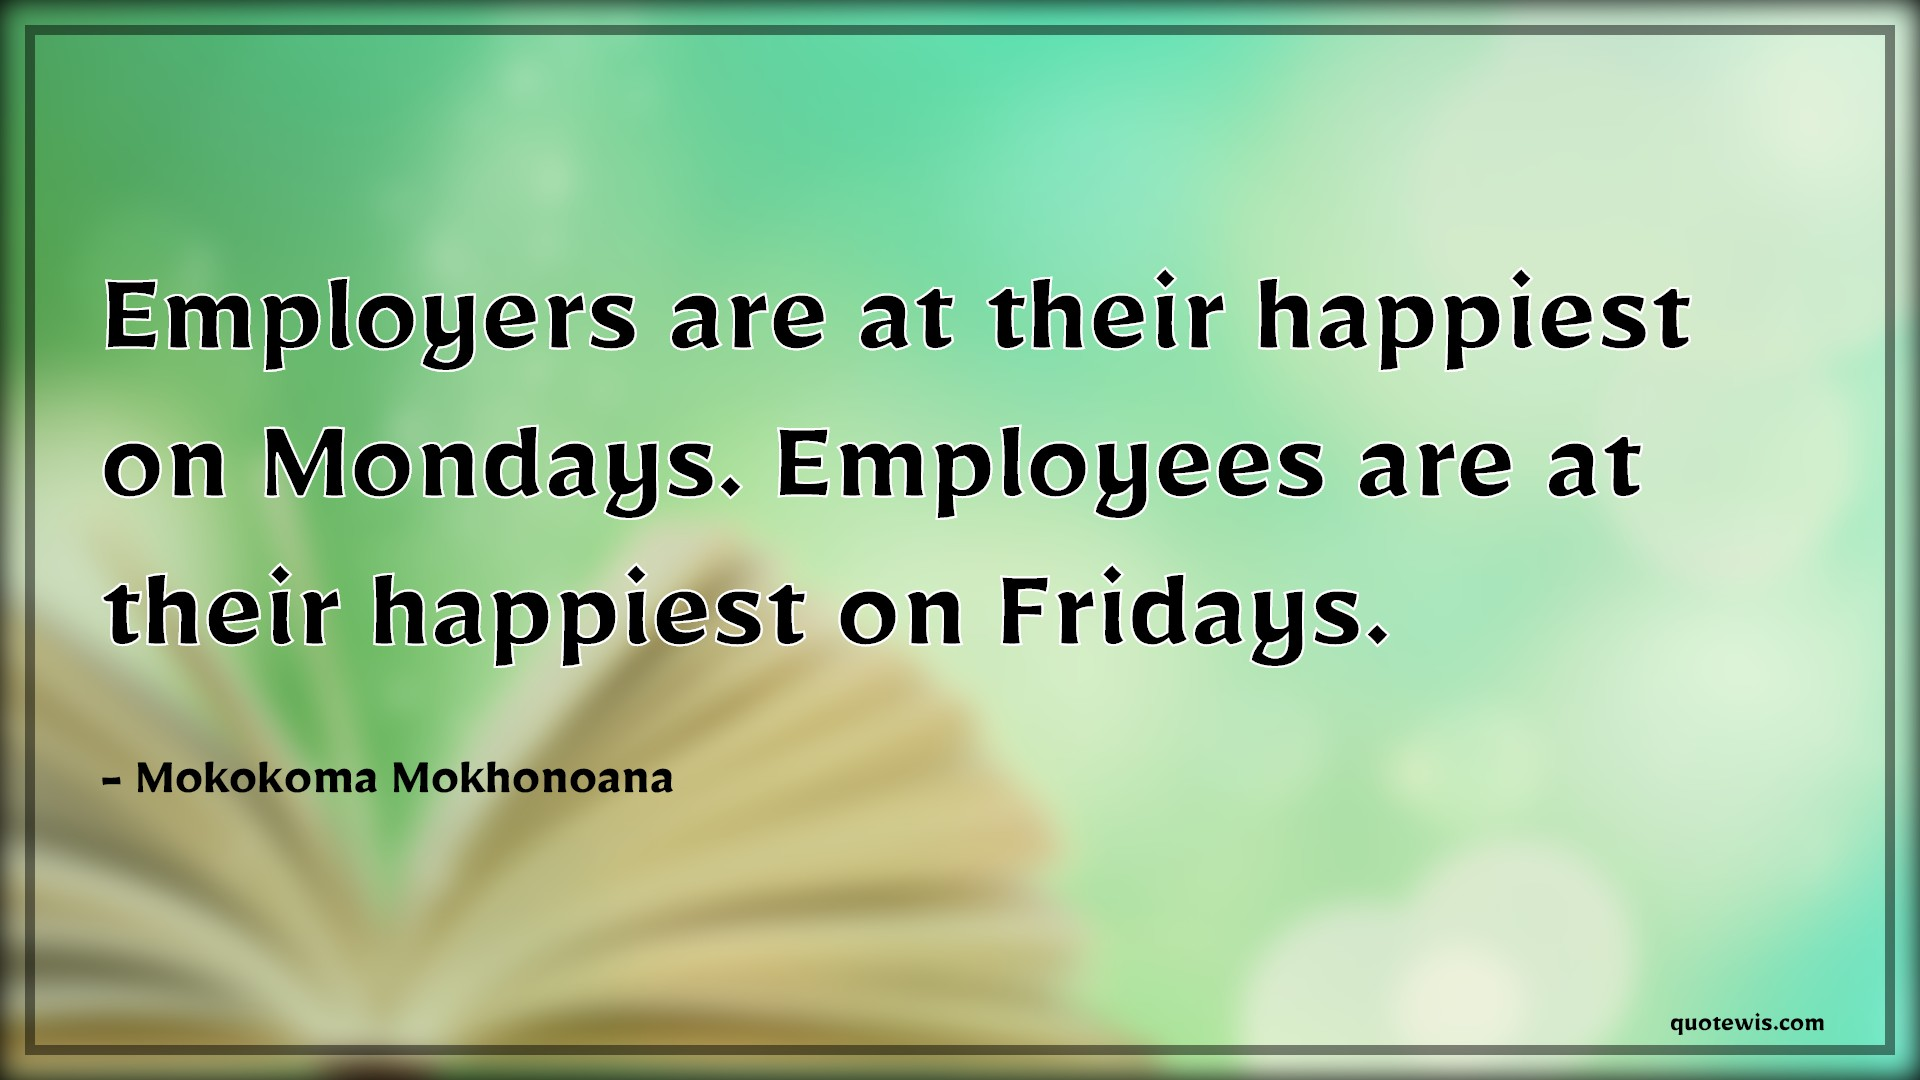 Employers are at their happiest on Mondays. Employees are at their happiest on Fridays.